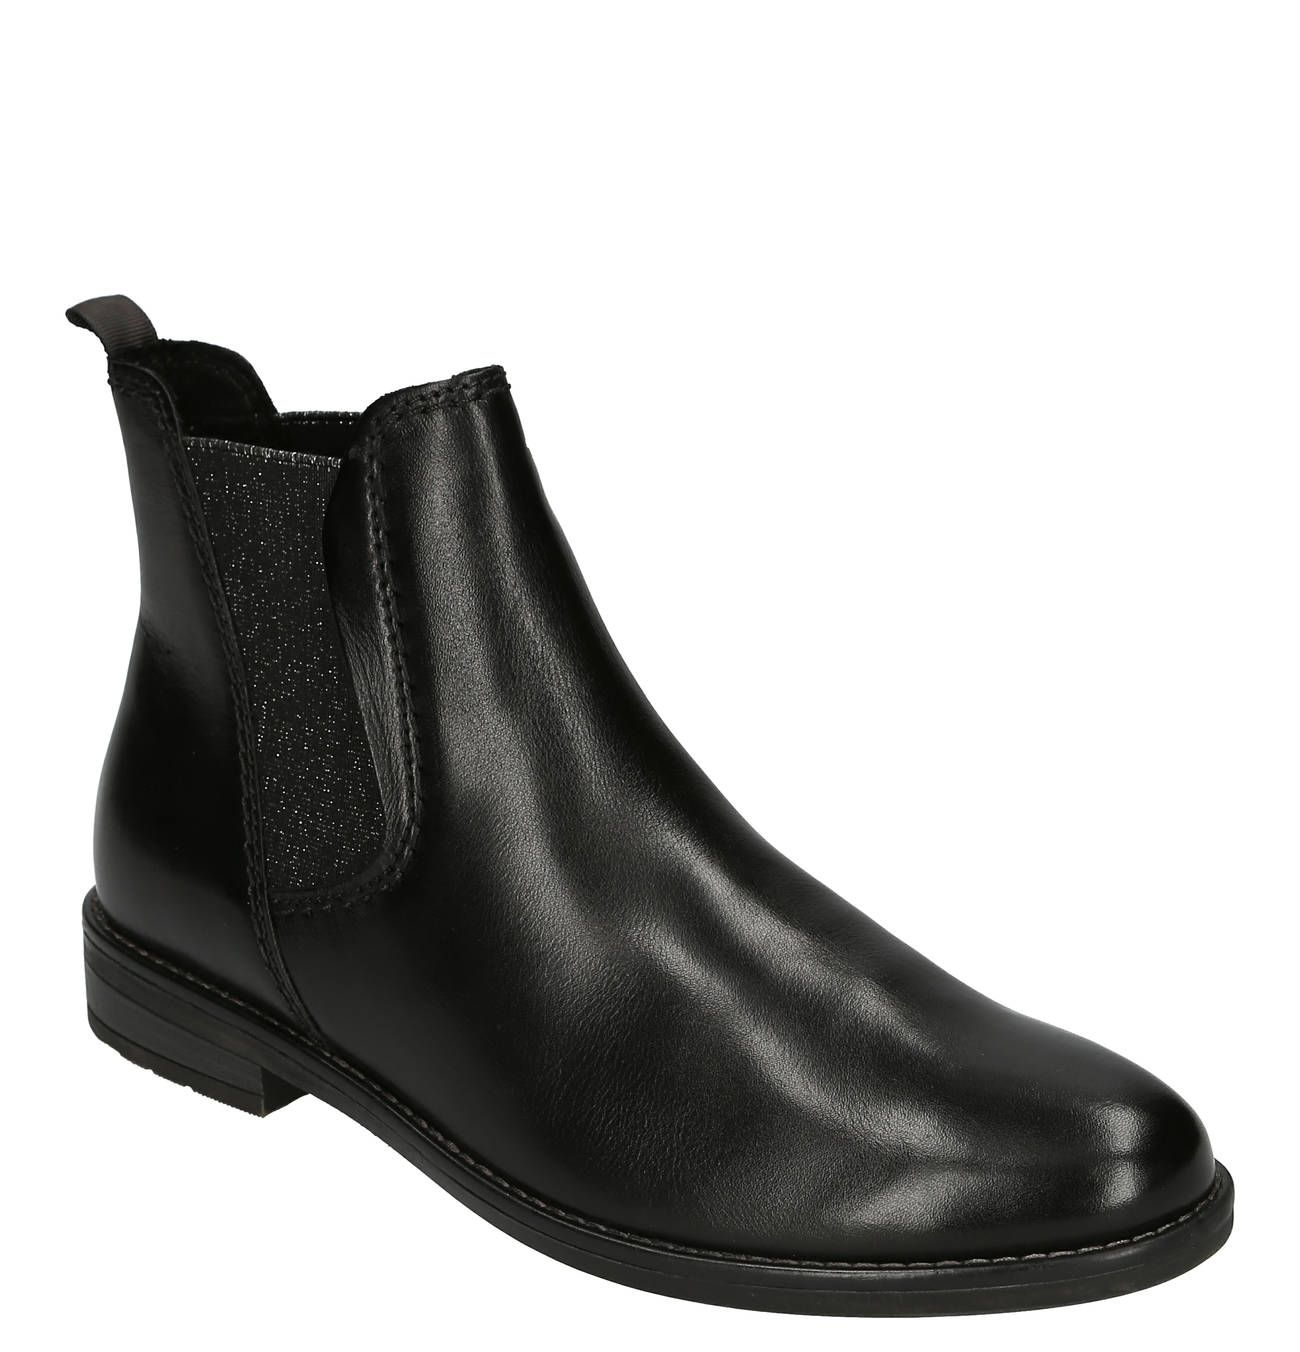 Chelsea Boots, Leder, Zugschlaufe | Products in 2019 | Marco